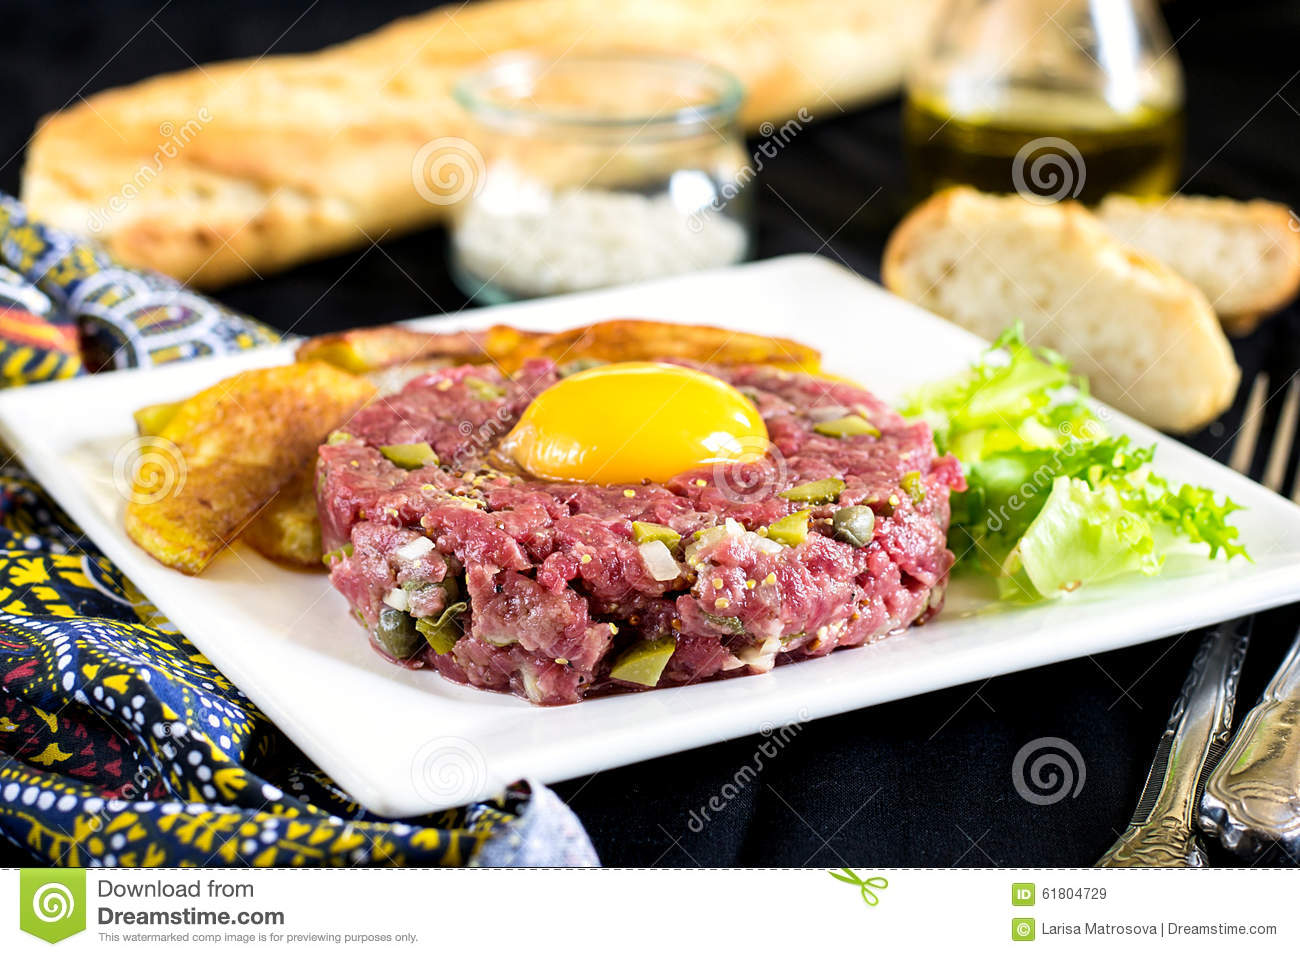 Image result for steak tartare no copyright